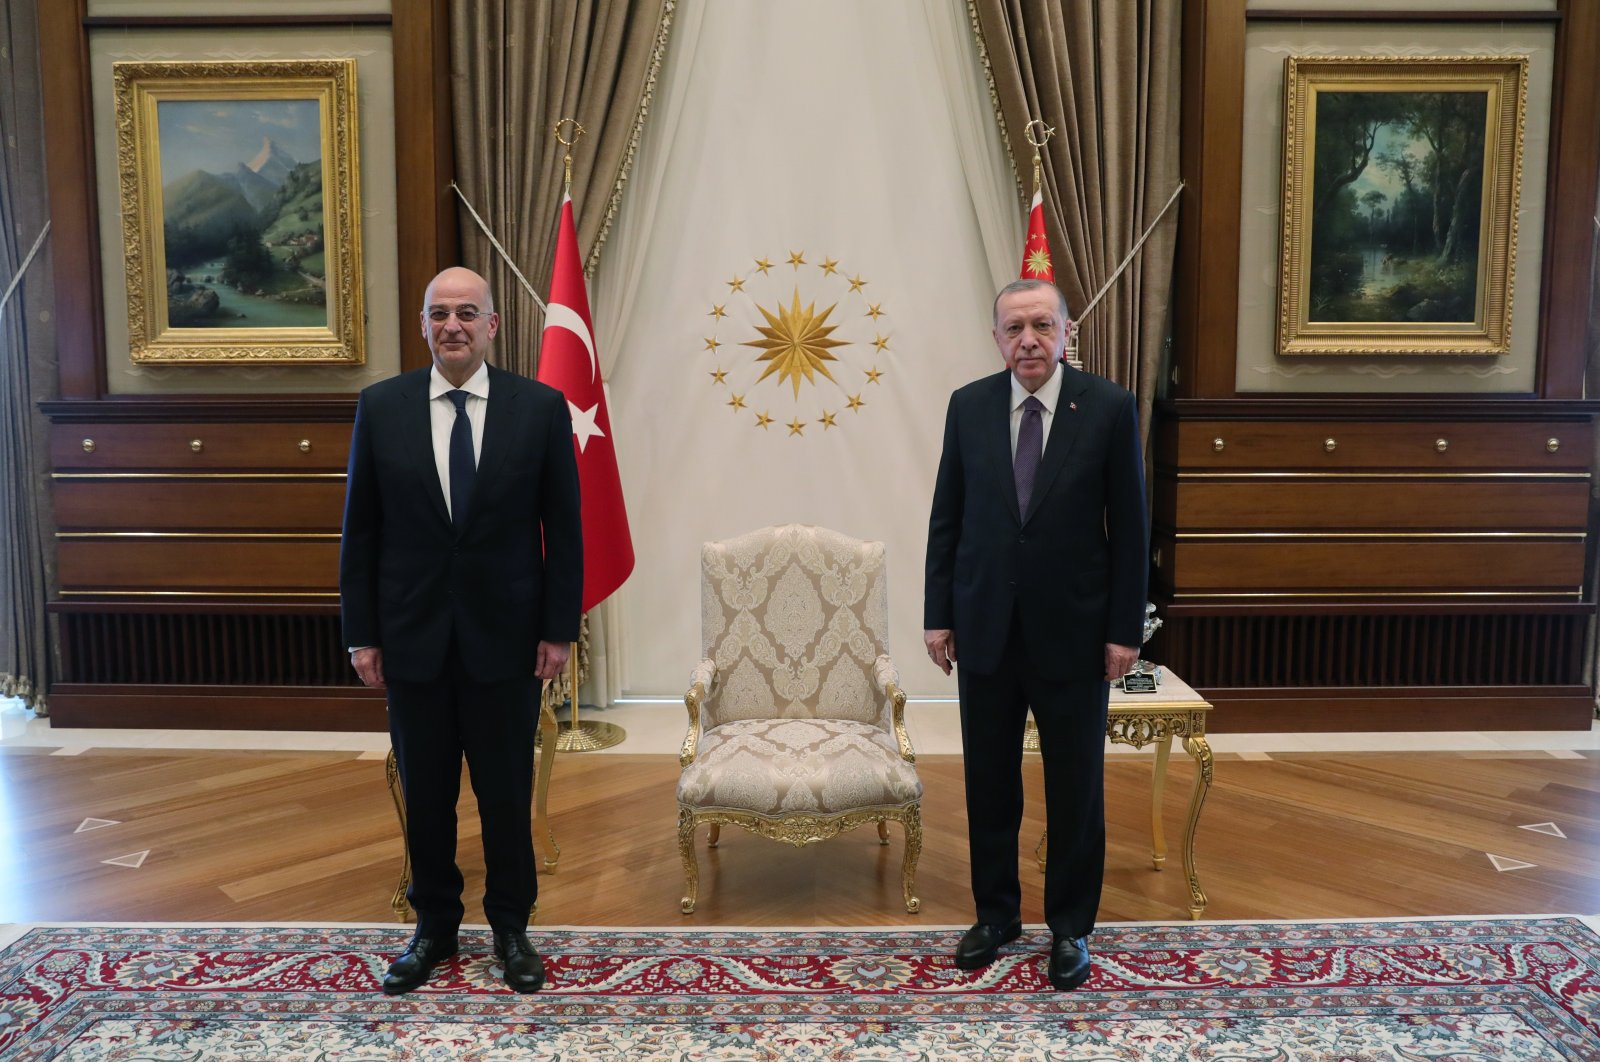 A handout photo made available by the Turkish Presidential Press Office shows President Recep Tayyip Erdoğan (R) and Greek Foreign Minister Nikos Dendias posing for a photograph before their meeting in Ankara, Turkey, April 15, 2021. (Courtesy of the Presidency)